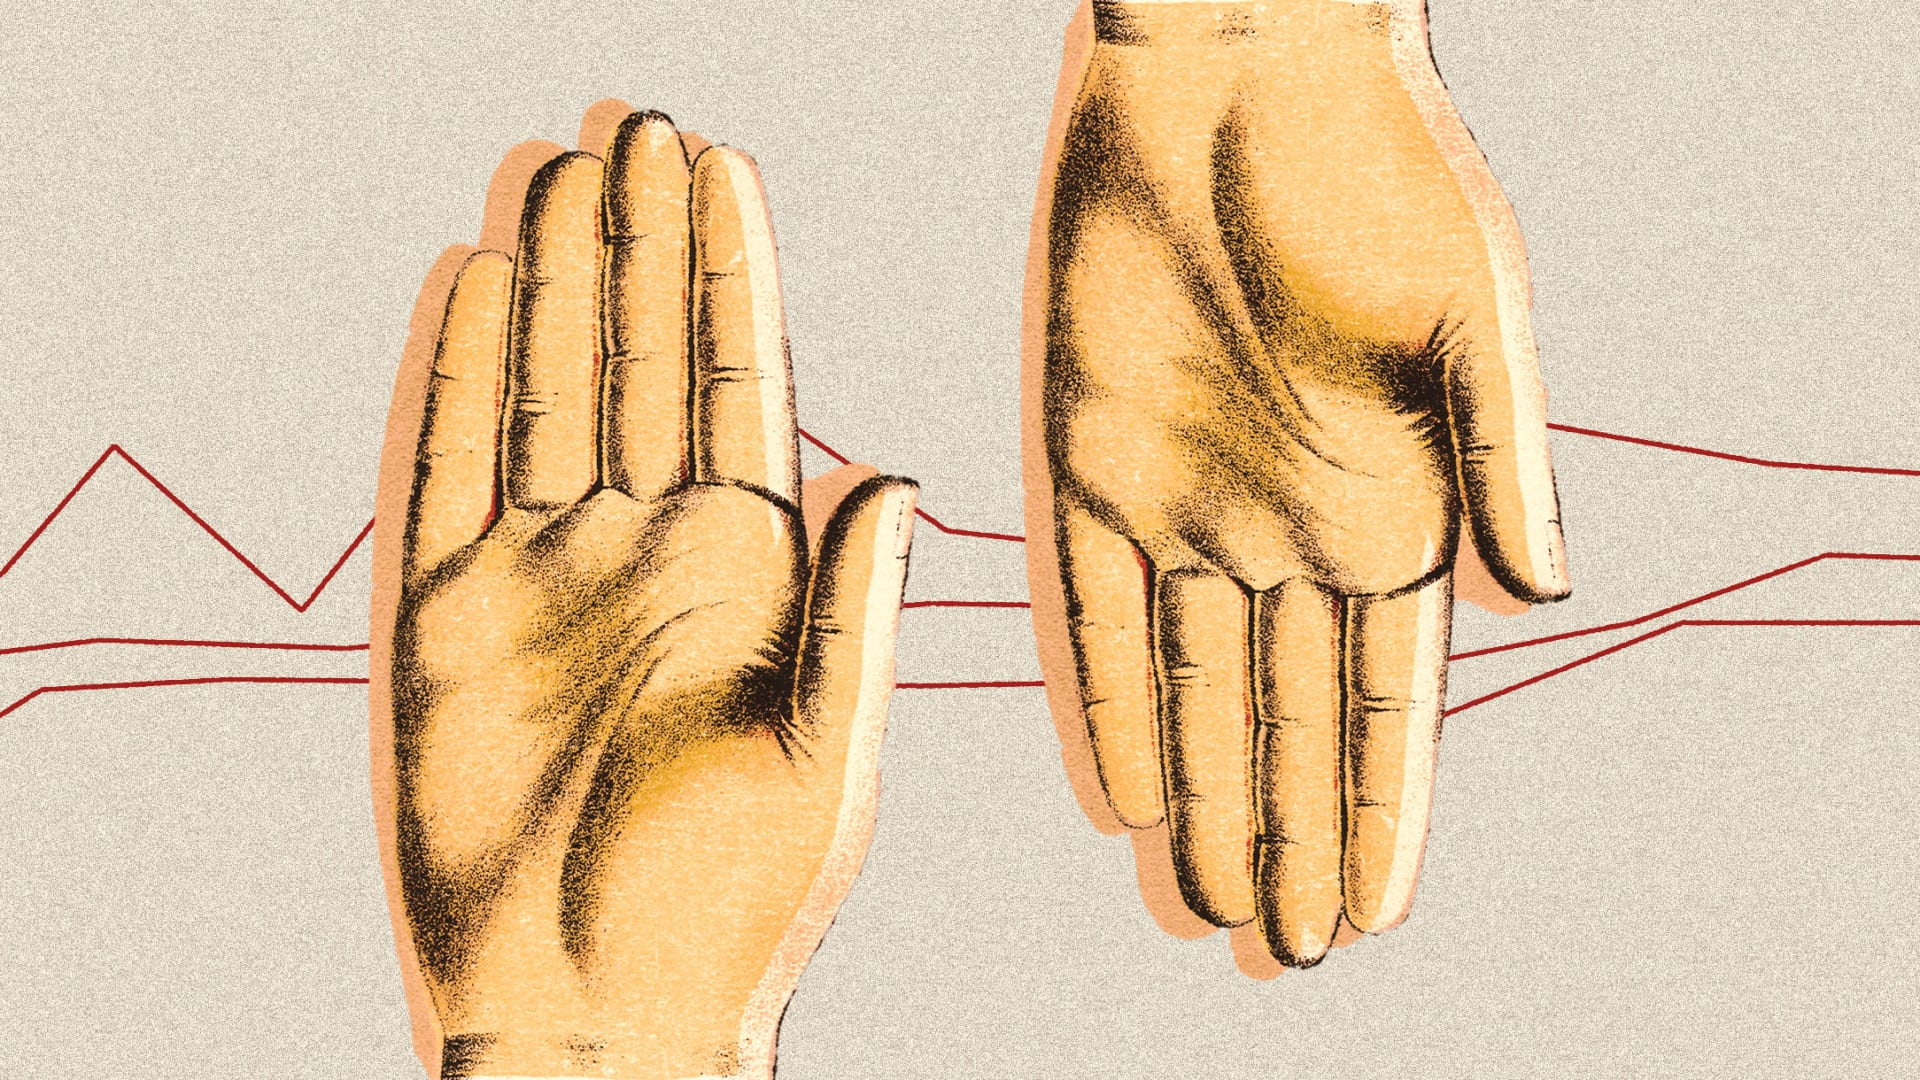 What I Learned From Losing the Use of My Right Hand